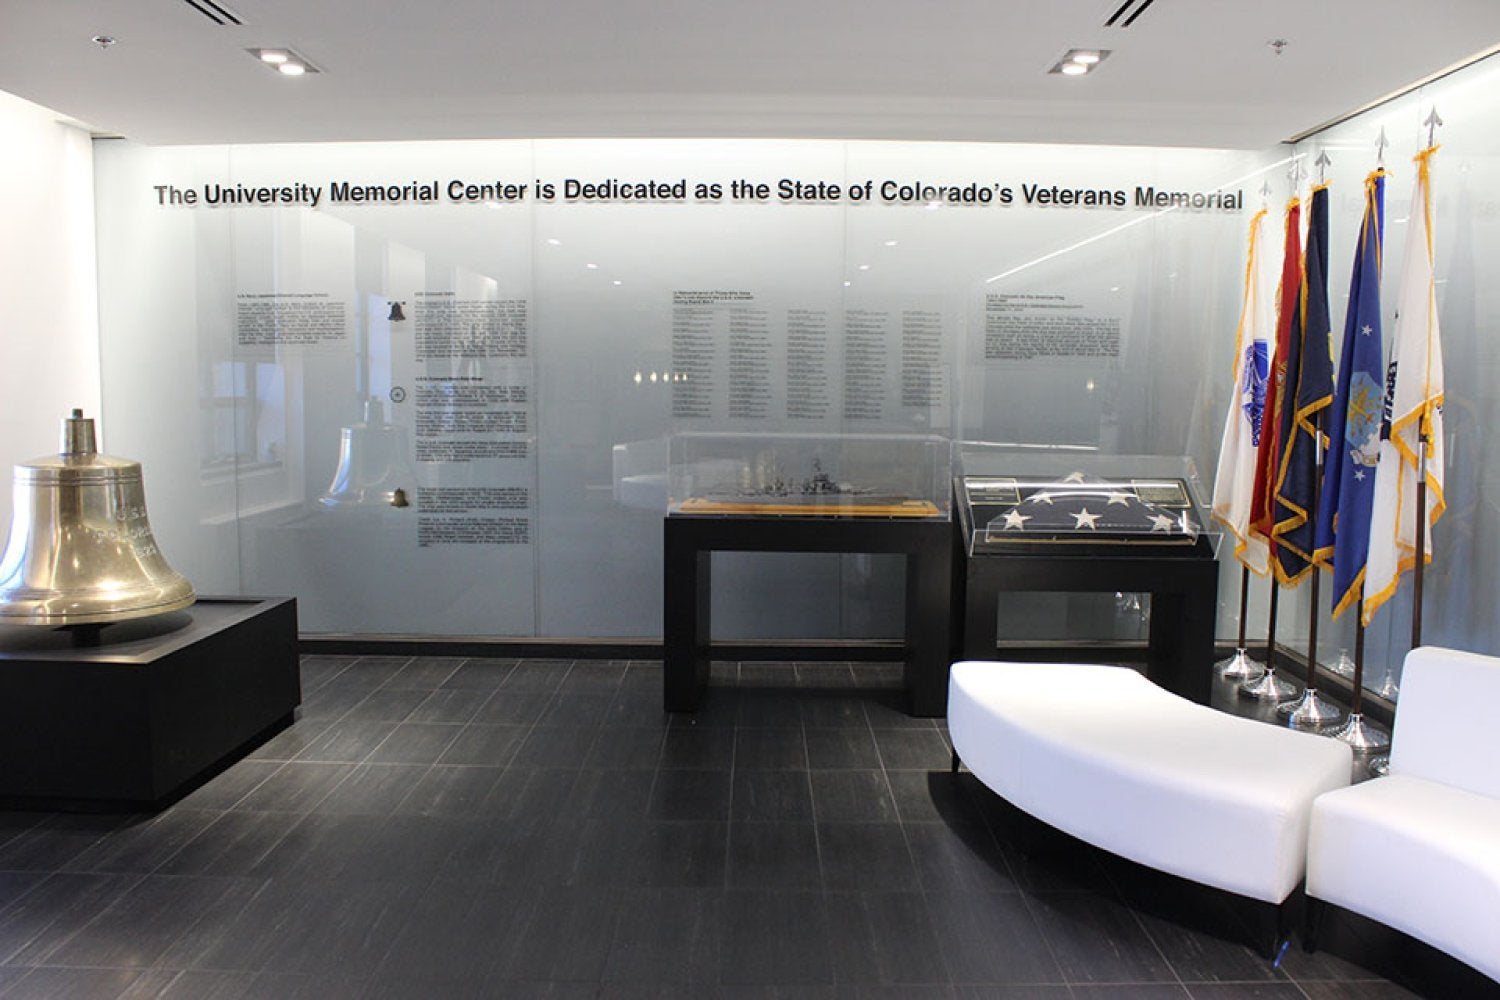 The Veterans Memorial Lounge on the second floor of the UMC